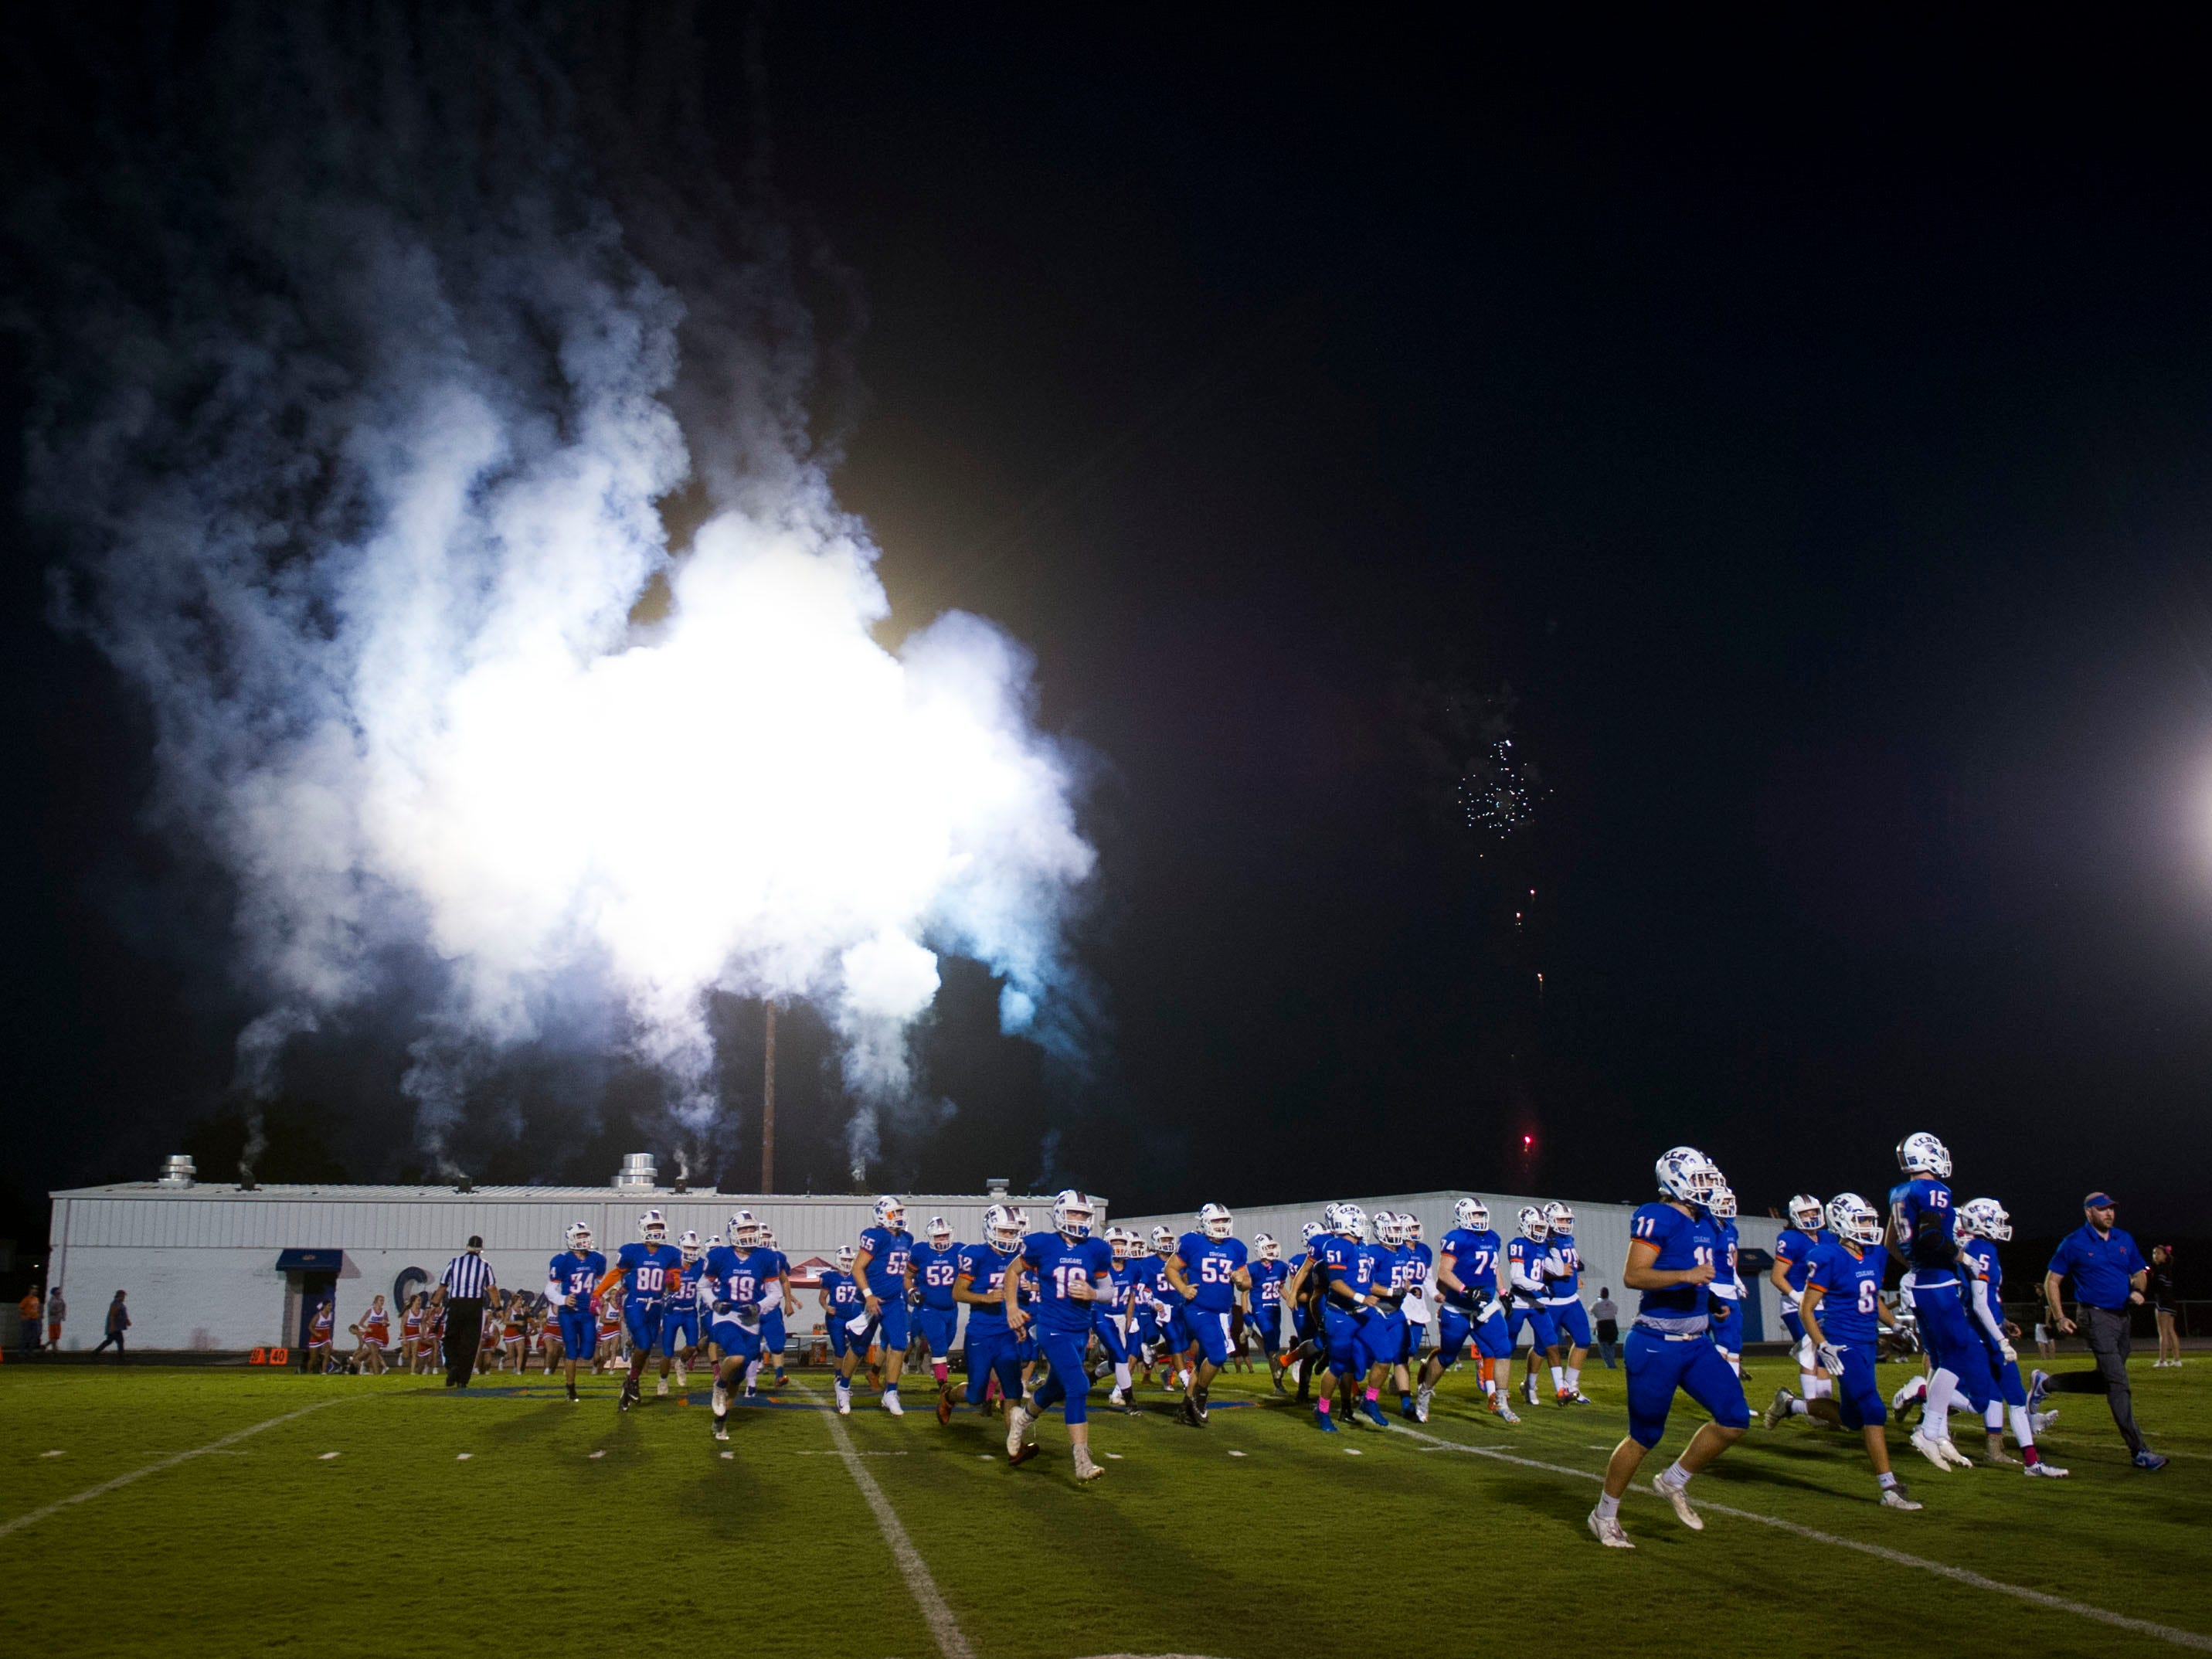 Fireworks erupt overhead as Campbell County takes the field against Fulton on Friday, October 13, 2017.